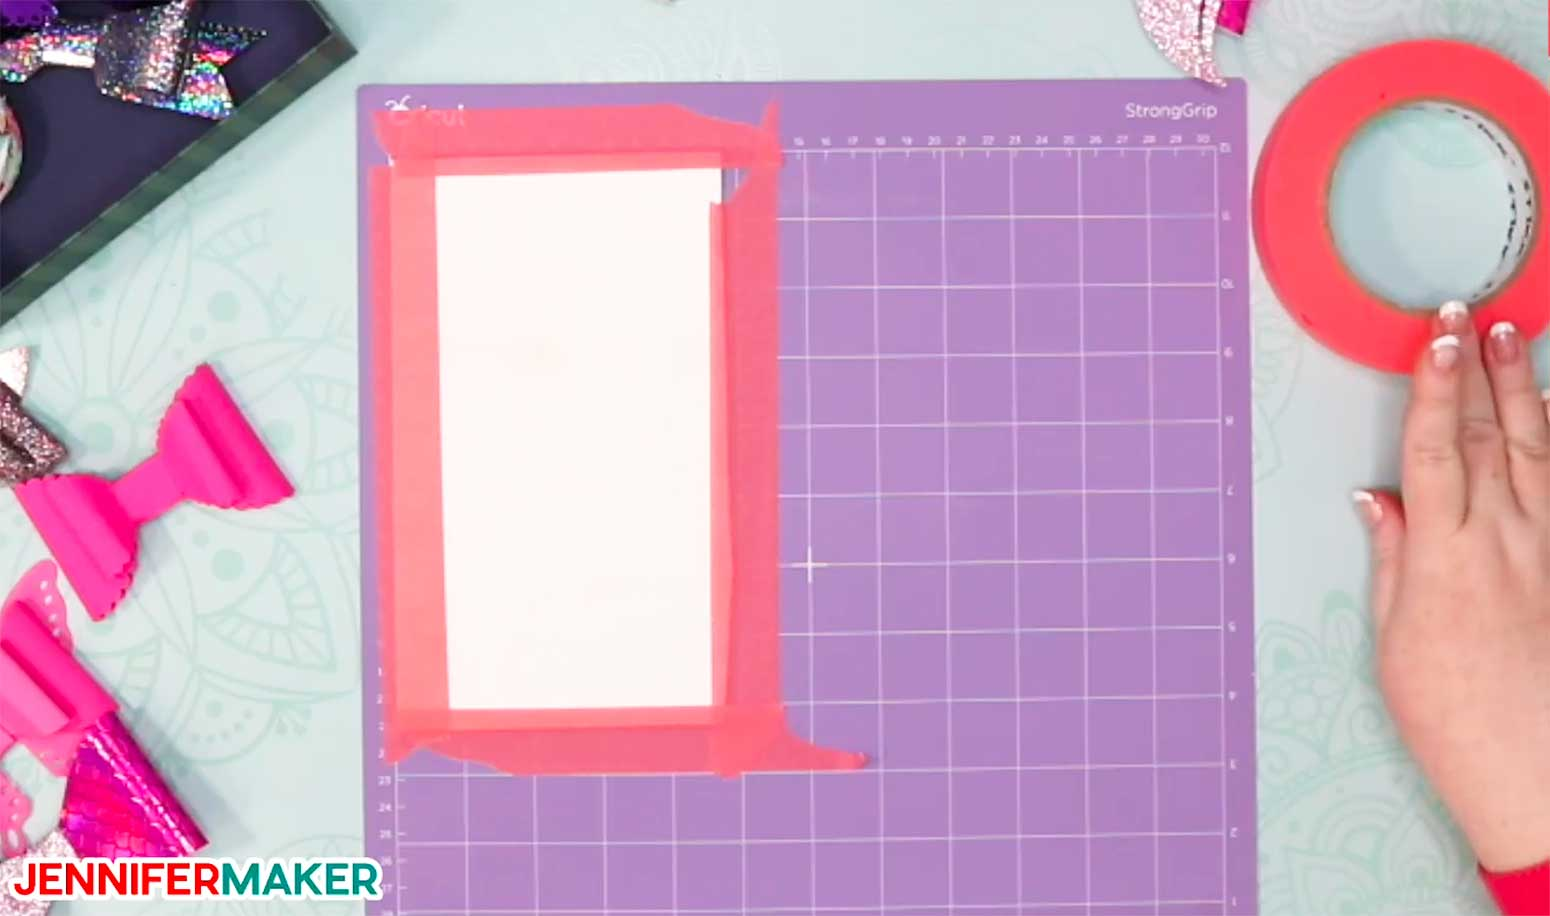 Place faux leather face down on a purple StrongGrip mat and tape around the edges to make faux leather hair bows